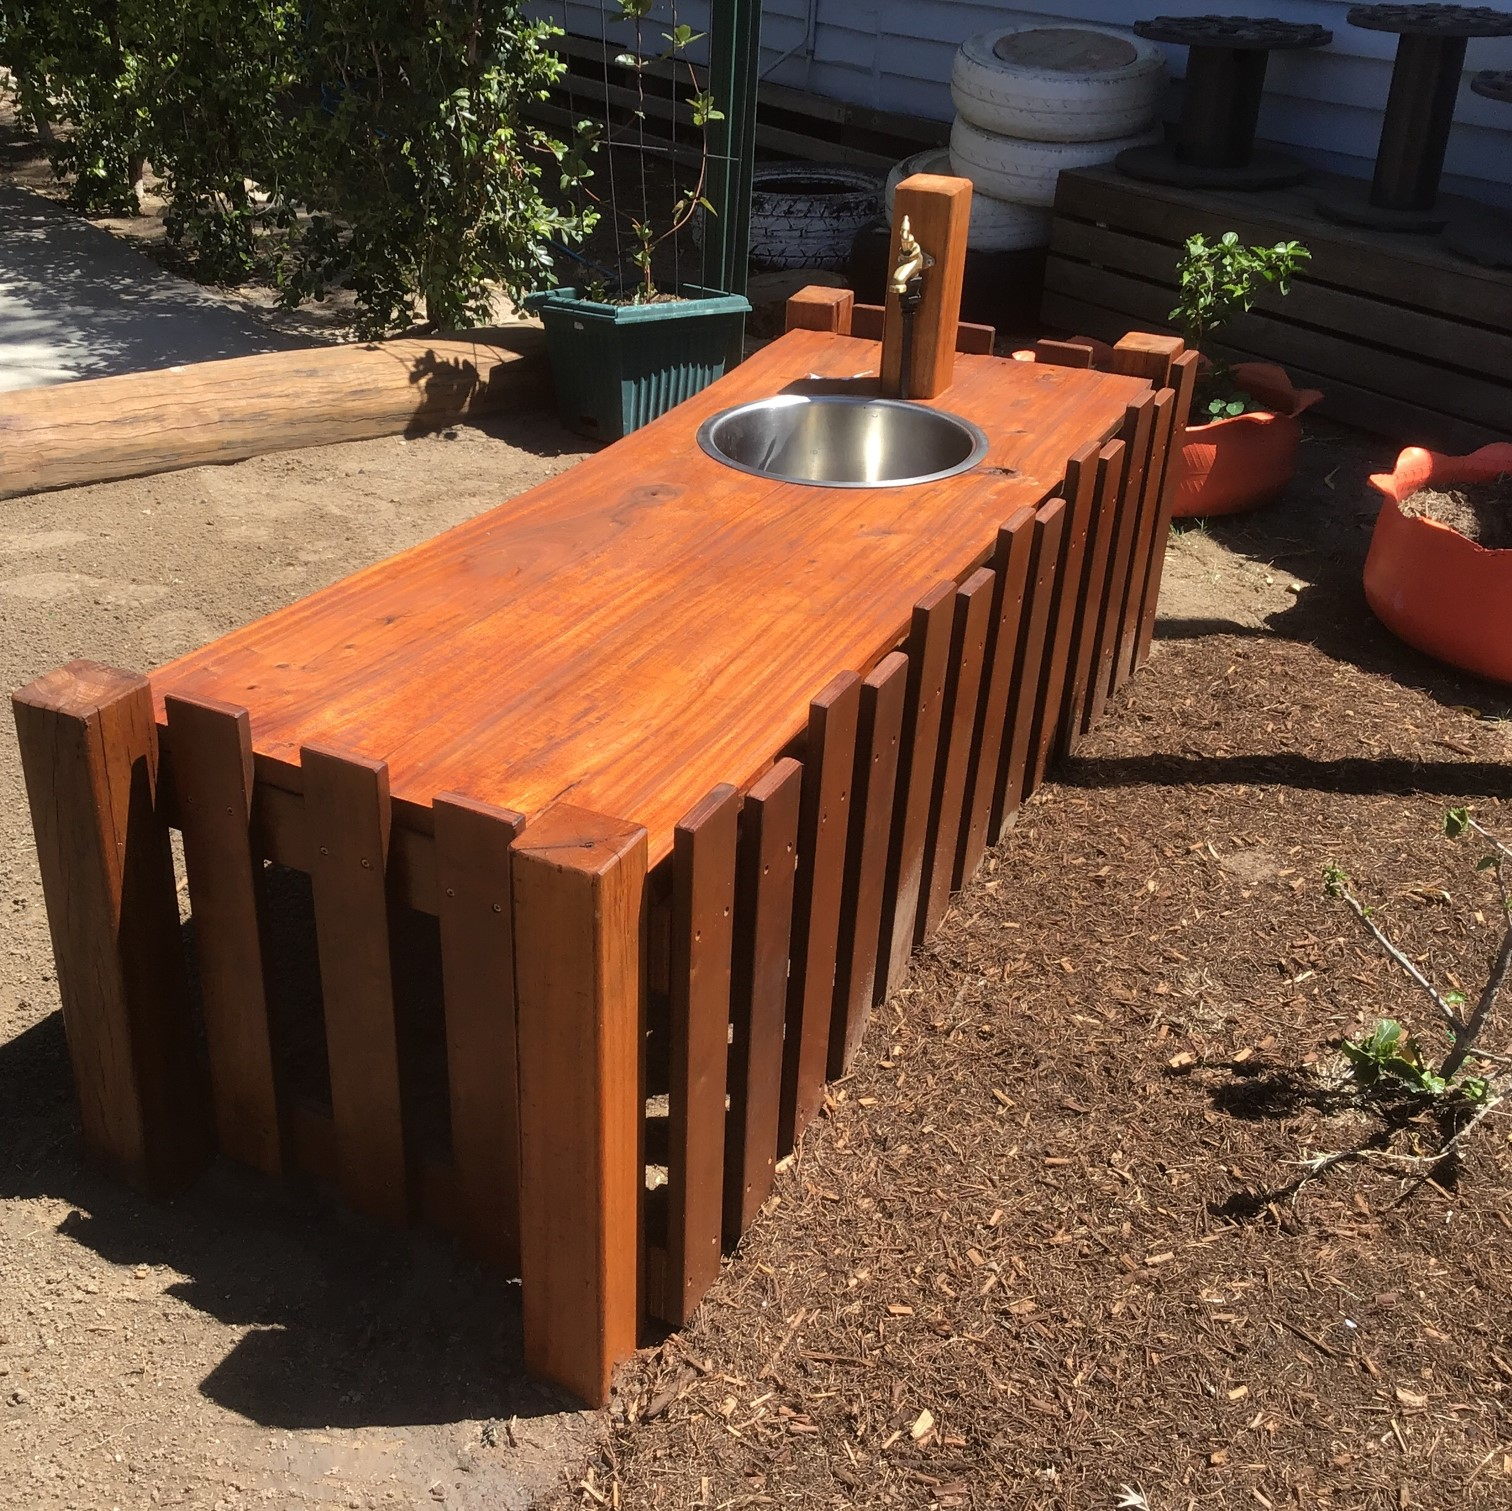 Murilla timber mud kitchen